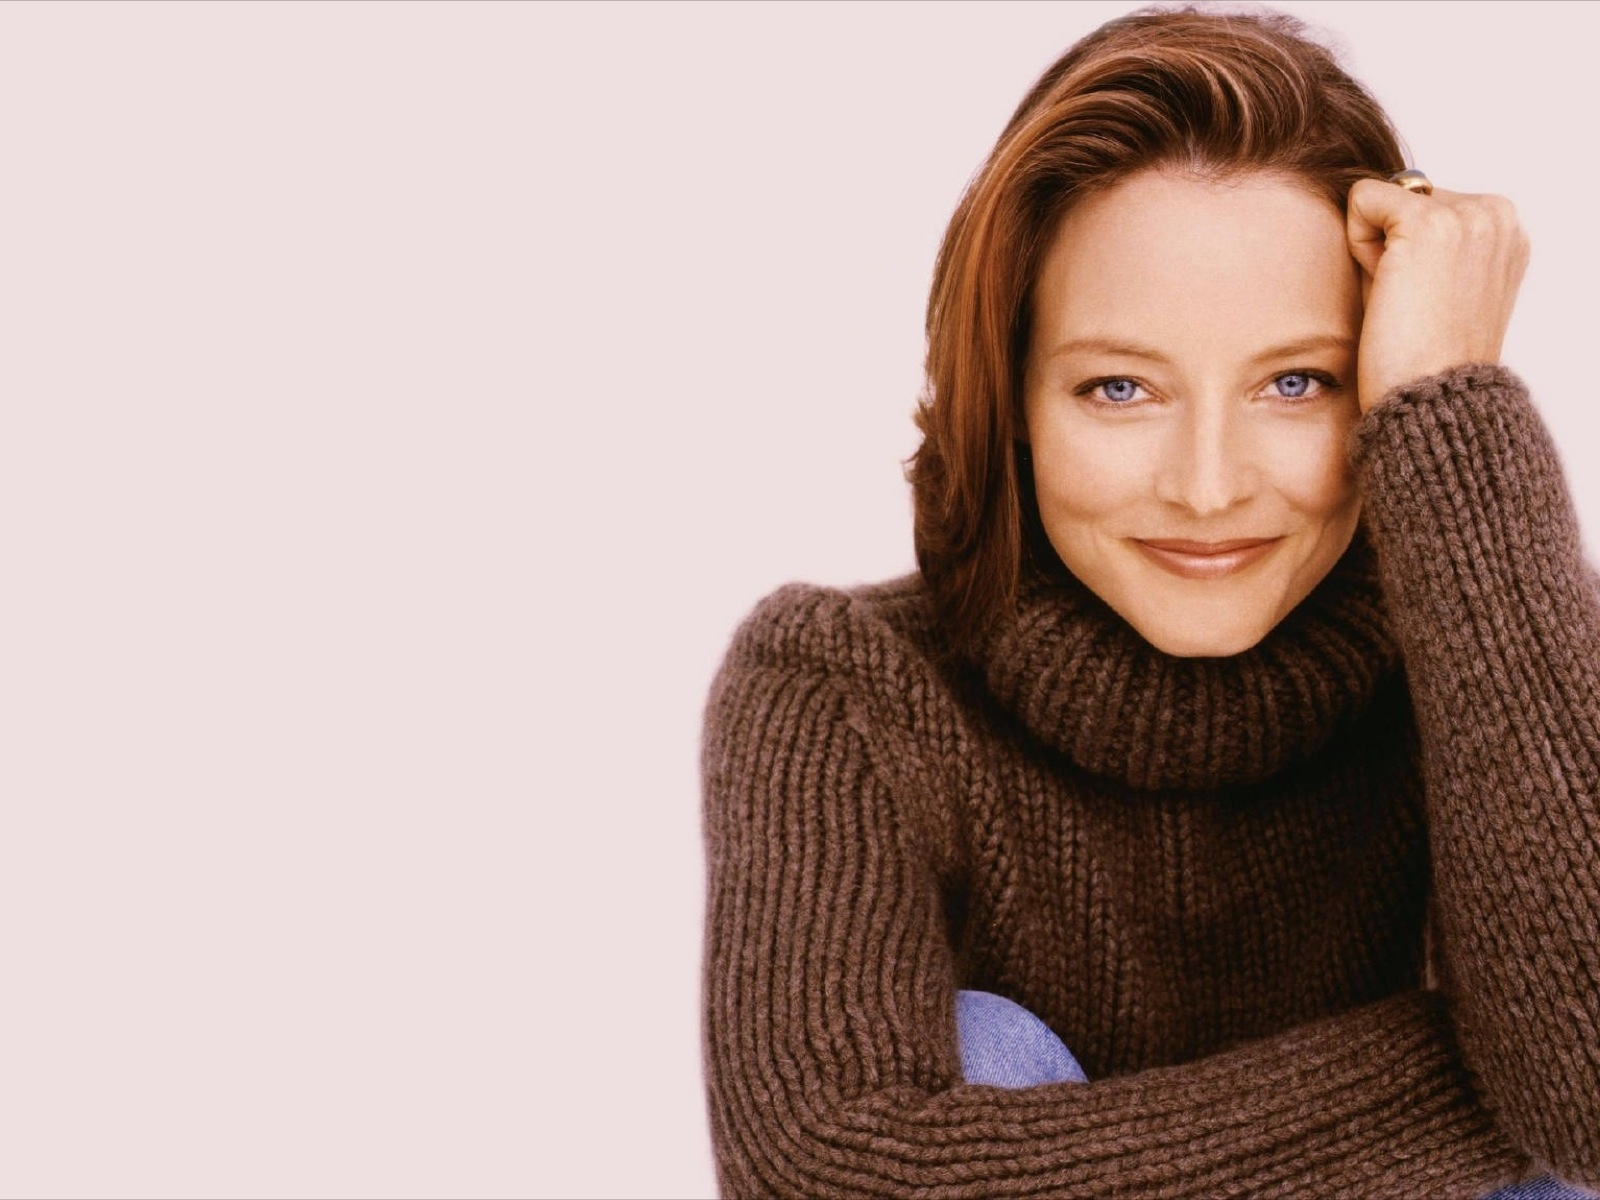 1600x1200 - Jodie Foster Wallpapers 5